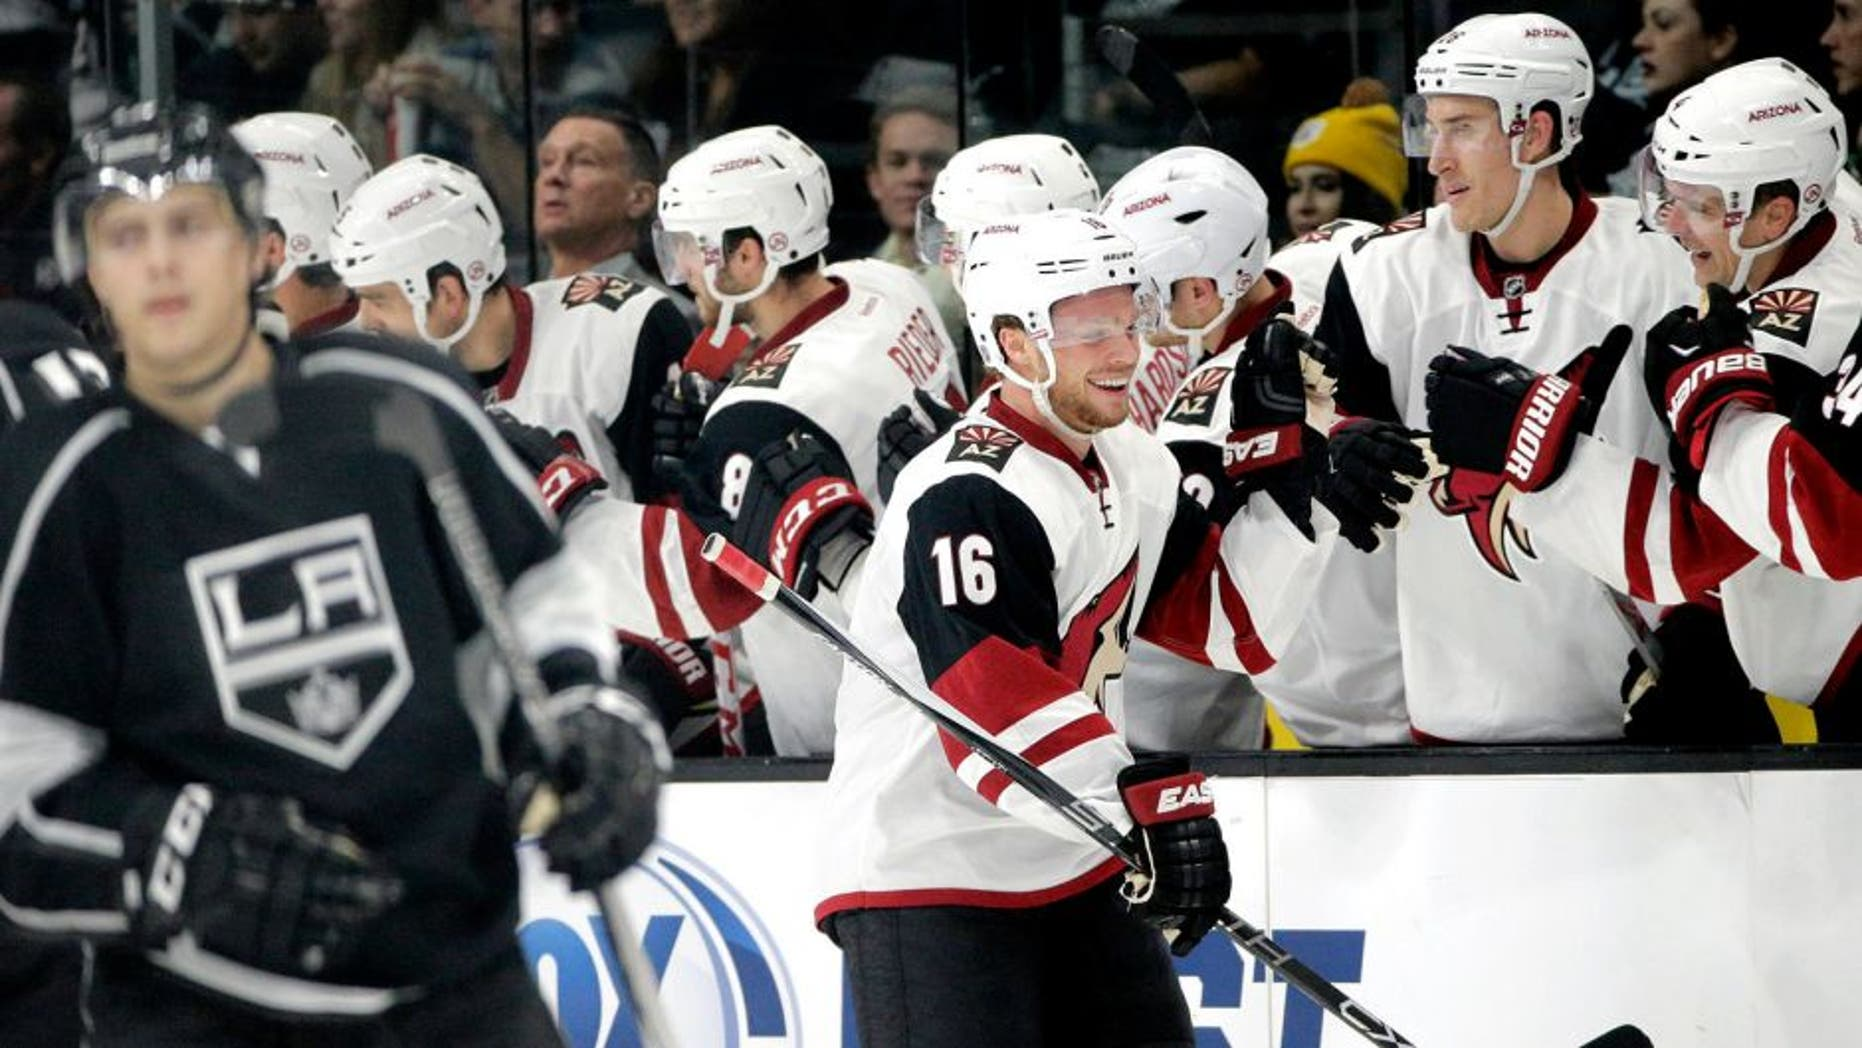 Arizona Coyotes' Max Domi, center, celebrates his goal with teammates during the second period of an NHL hockey game against the Los Angeles Kings, Friday, Oct. 9, 2015, in Los Angeles. (AP Photo/Jae C. Hong)